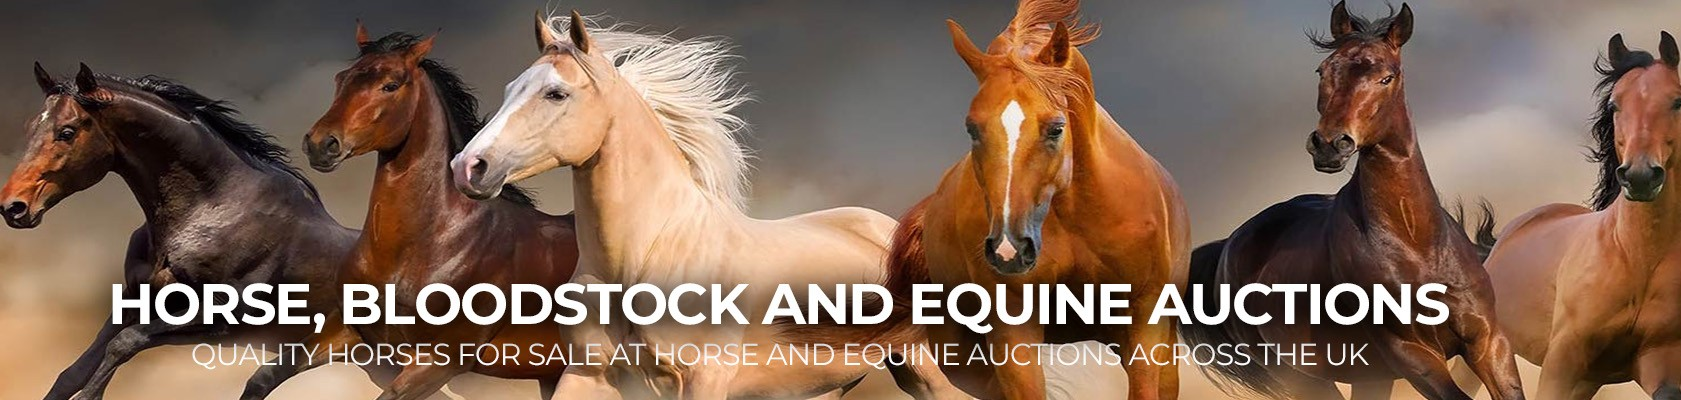 horse and equine auctions